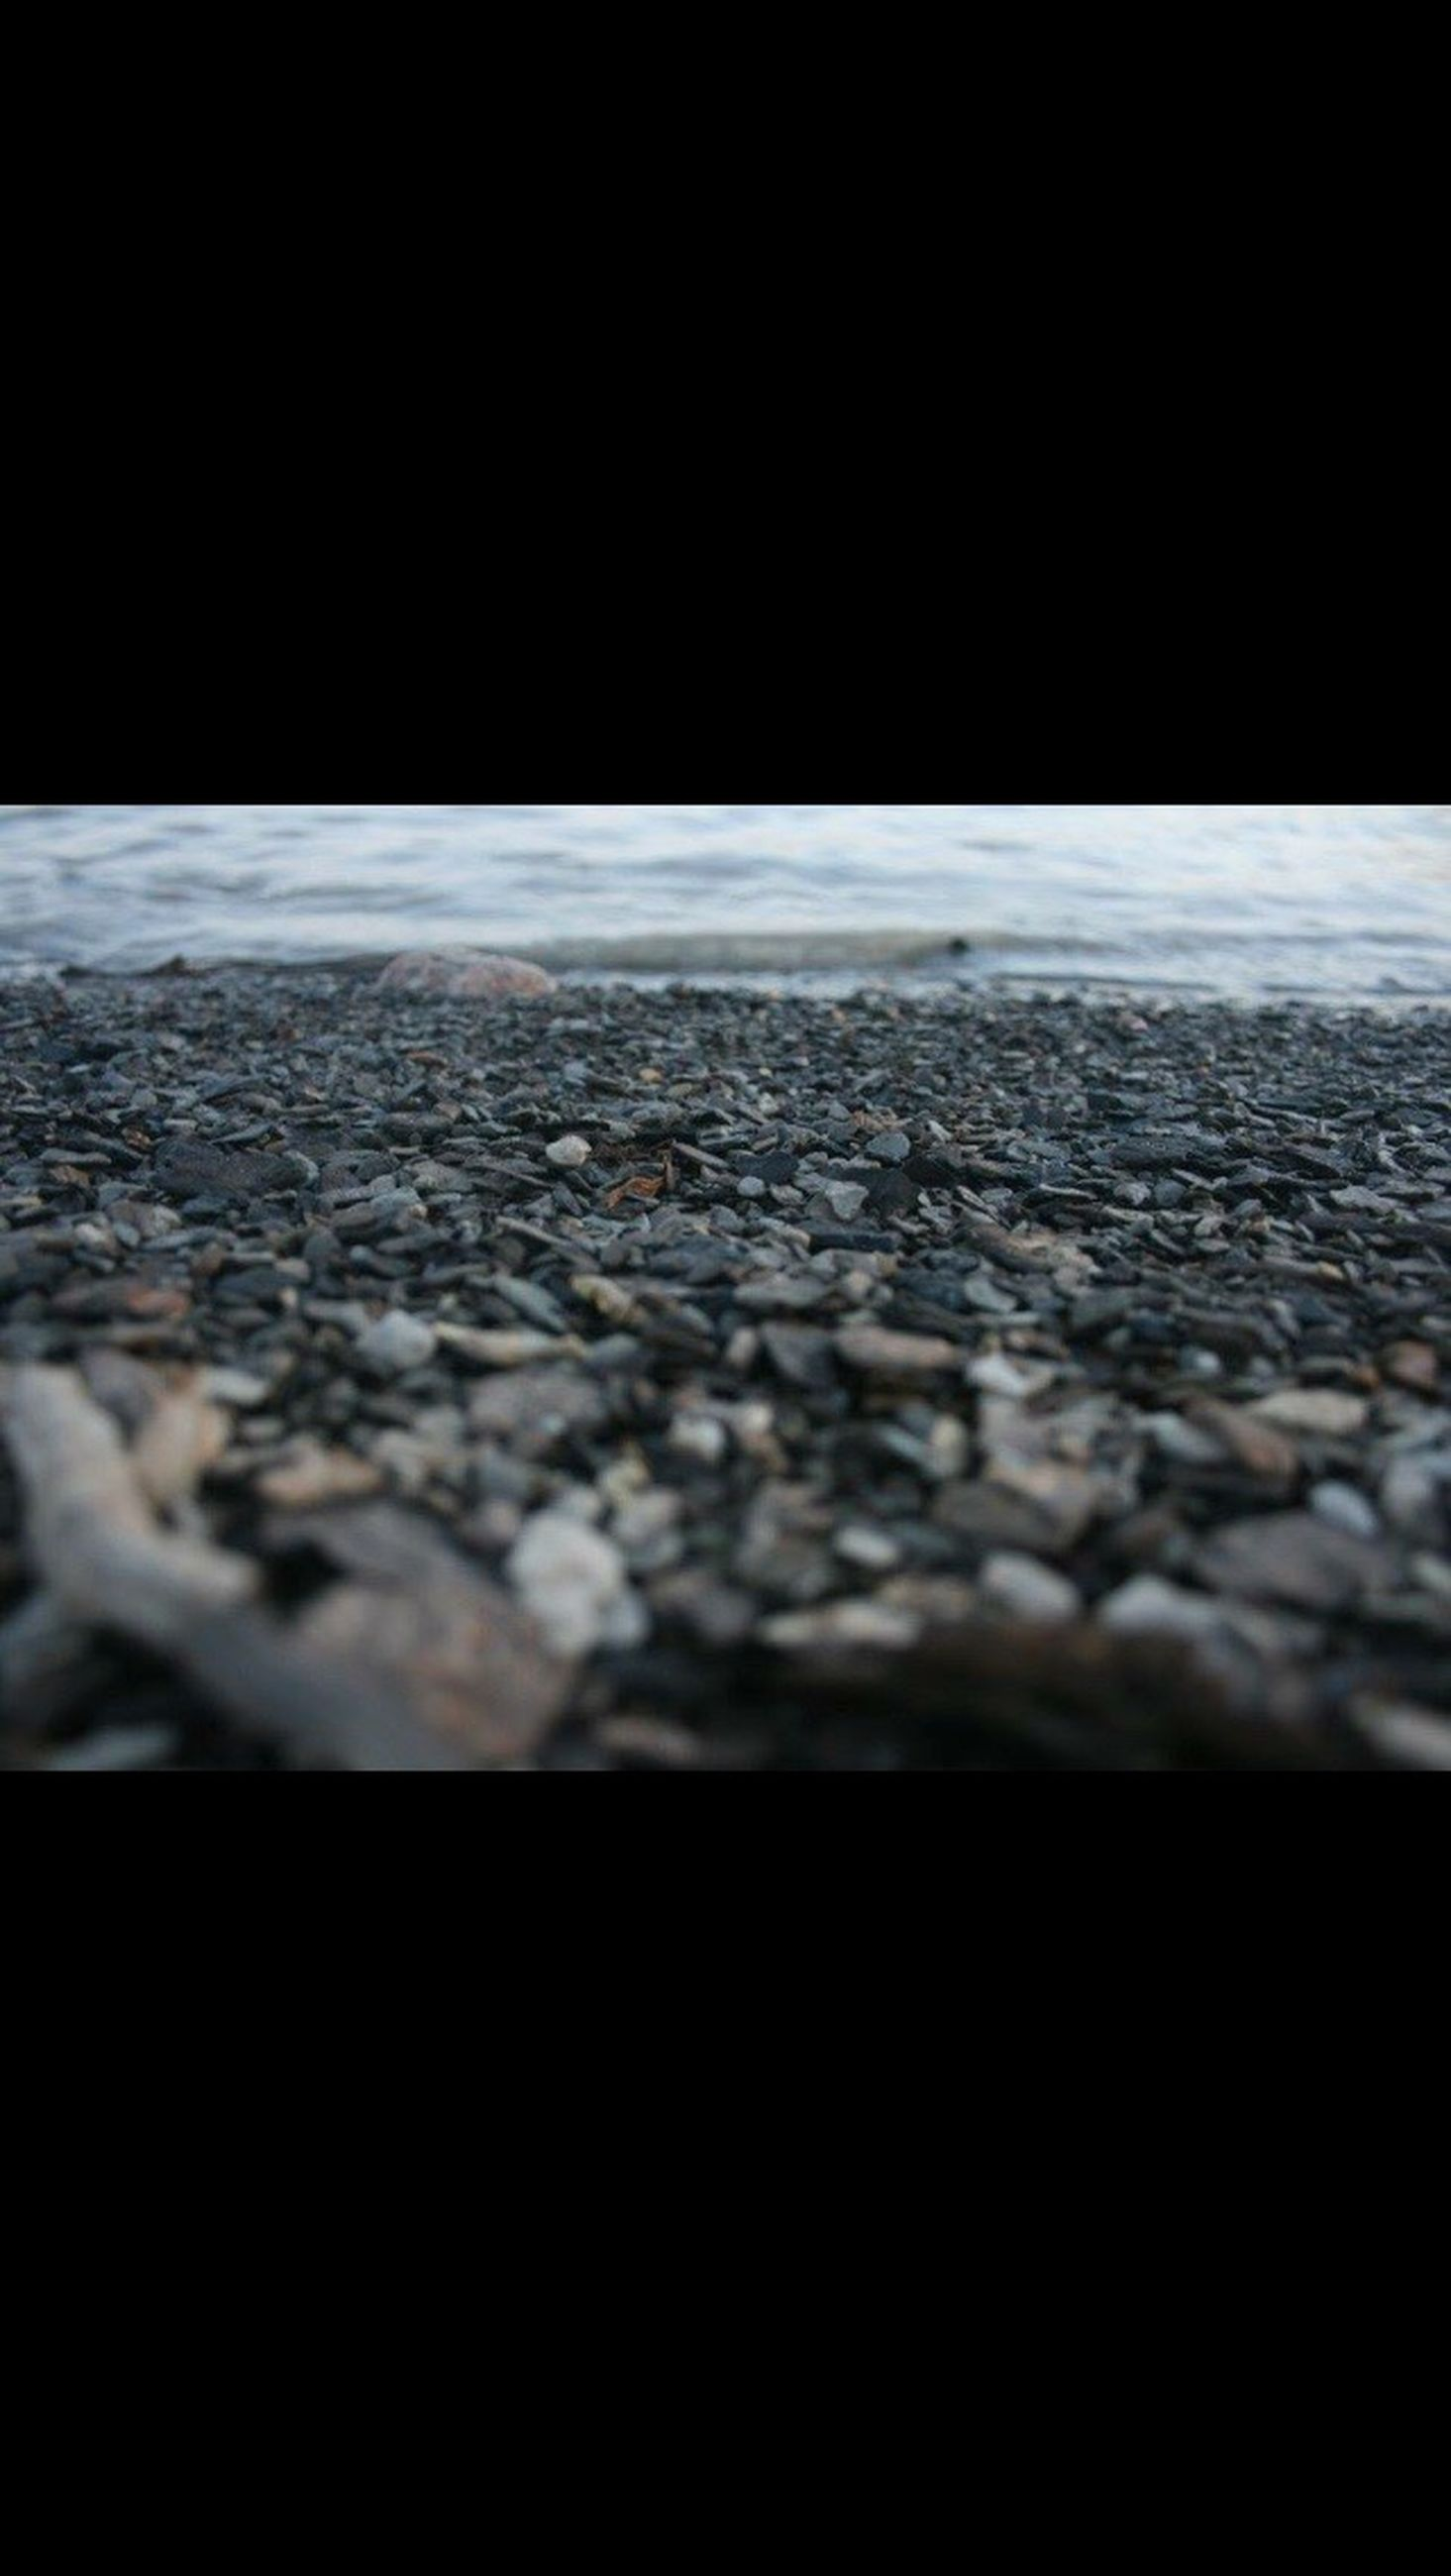 no people, textured, surface level, nature, close-up, black background, pebble, outdoors, night